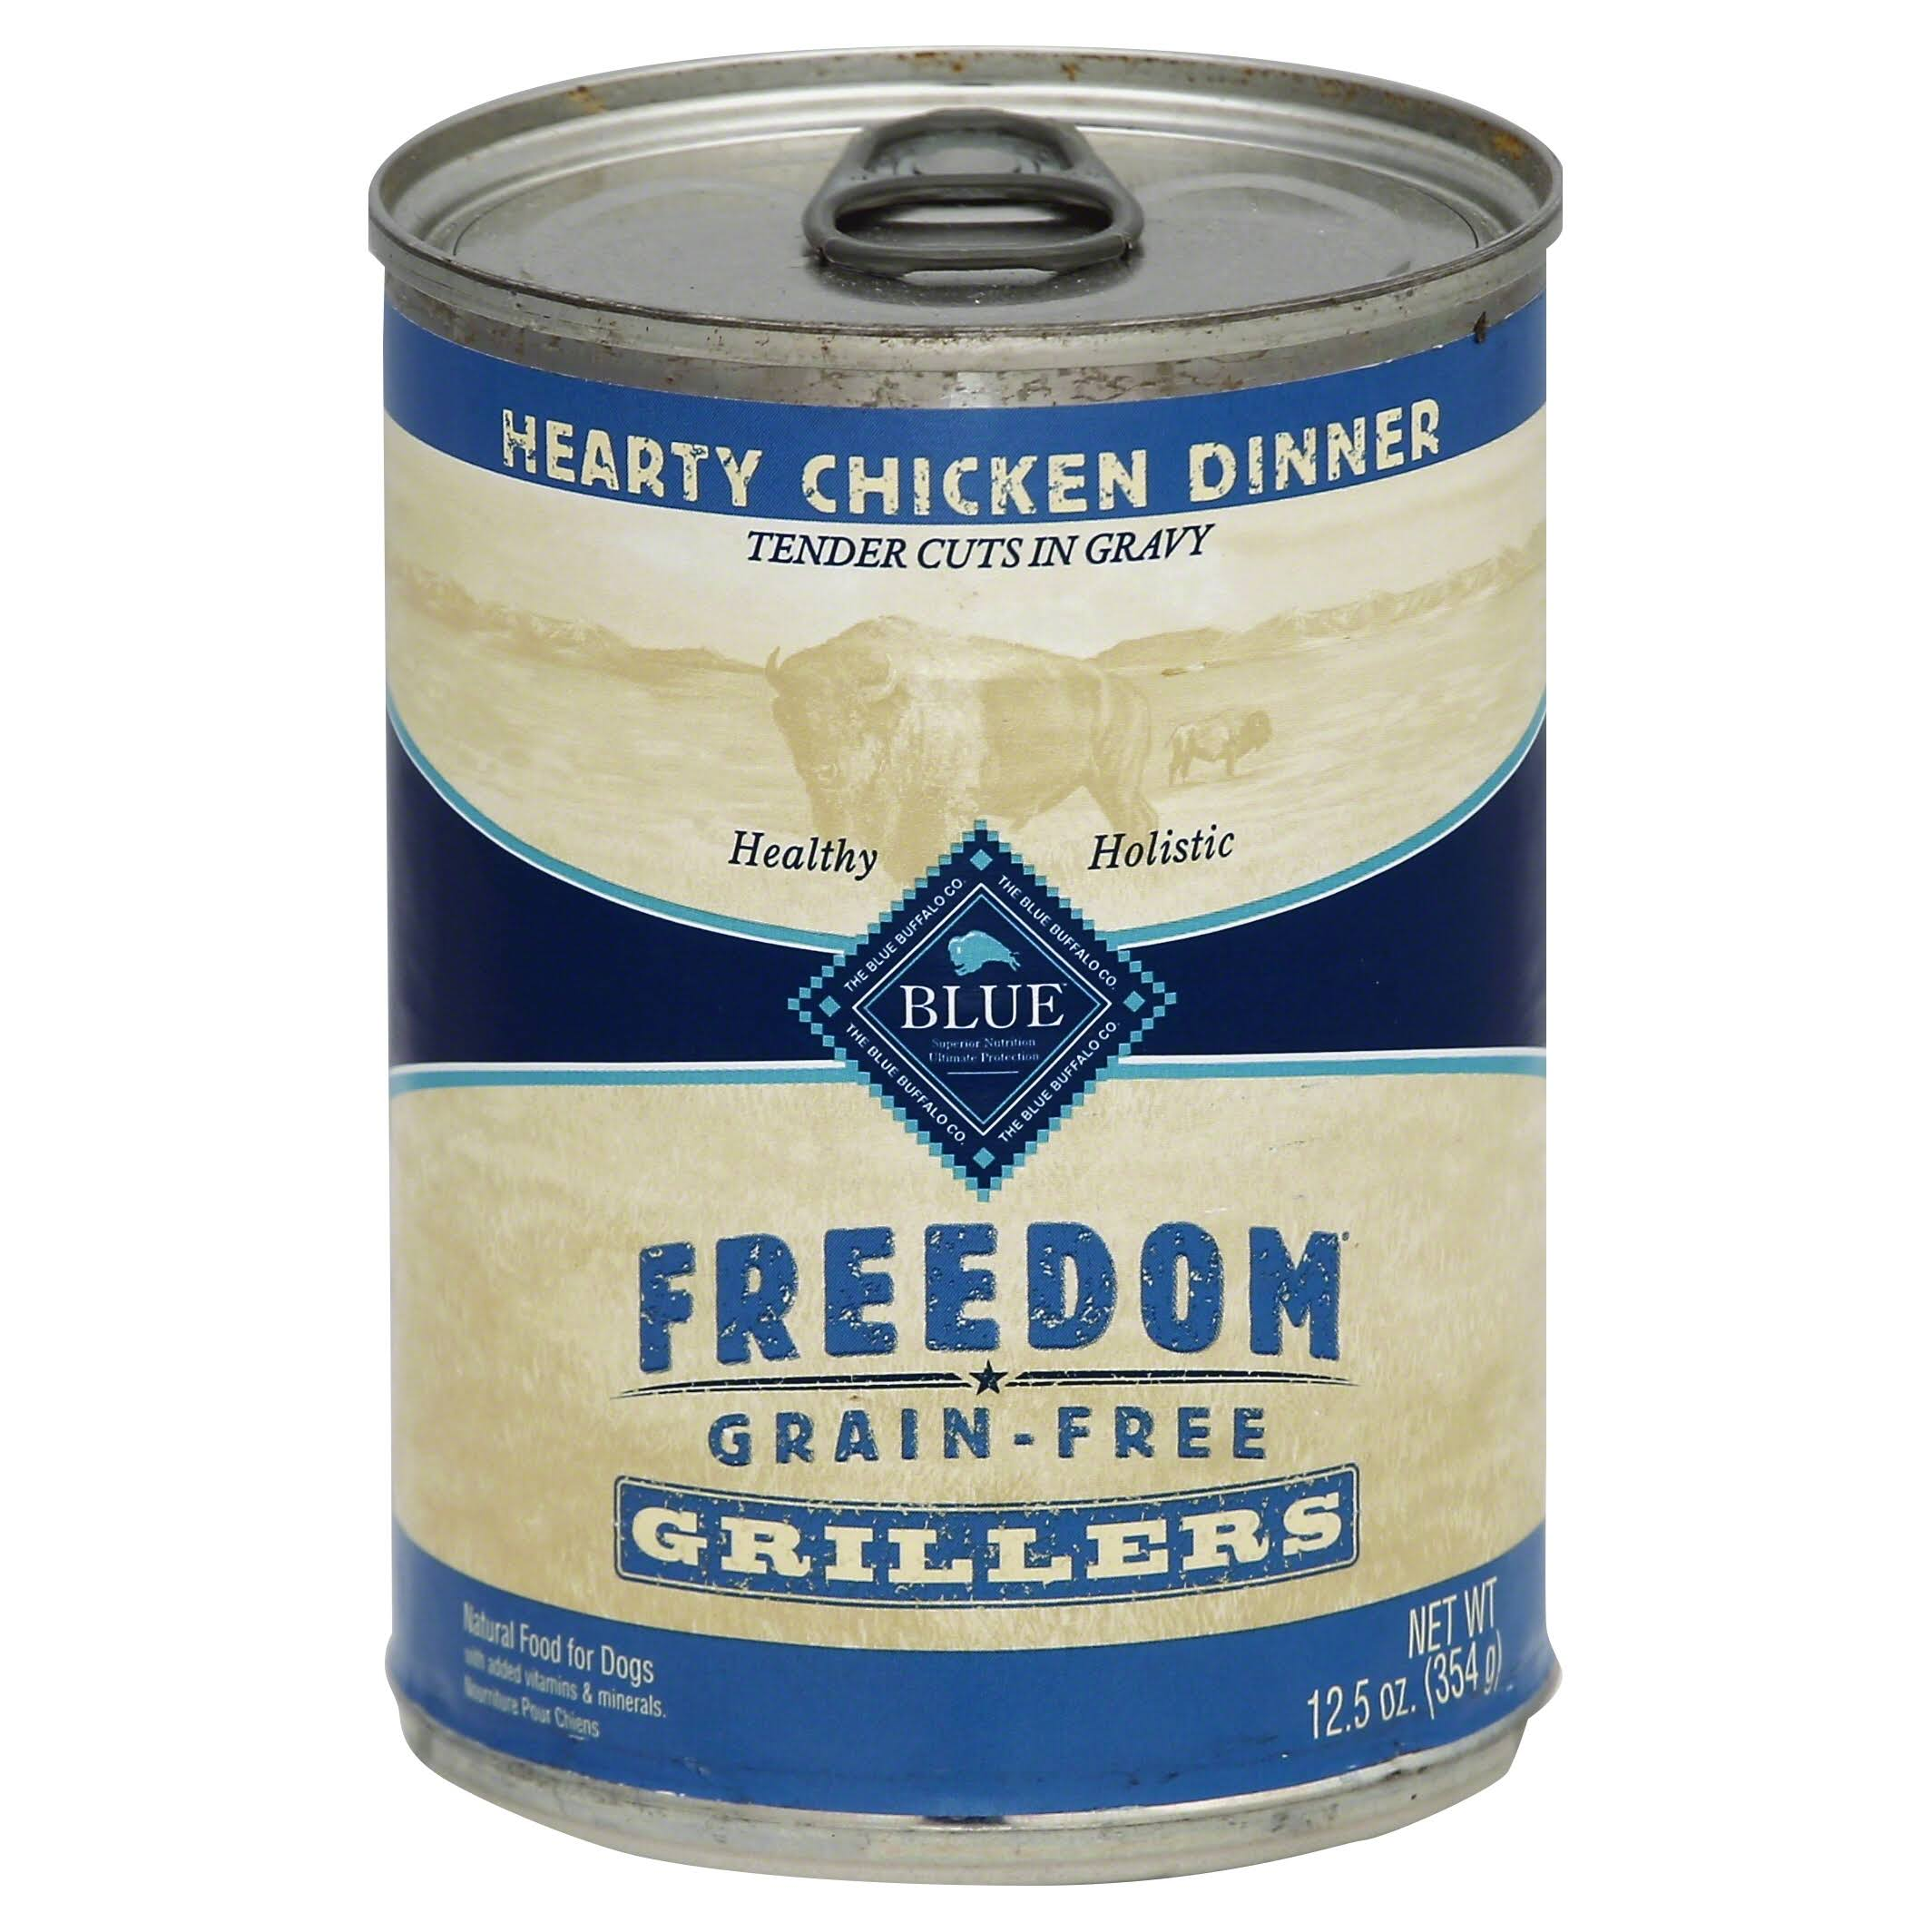 Blue Buffalo Freedom Grain Free Wet Adult Dog Food - Hearty Chicken Dinner, 12.5oz